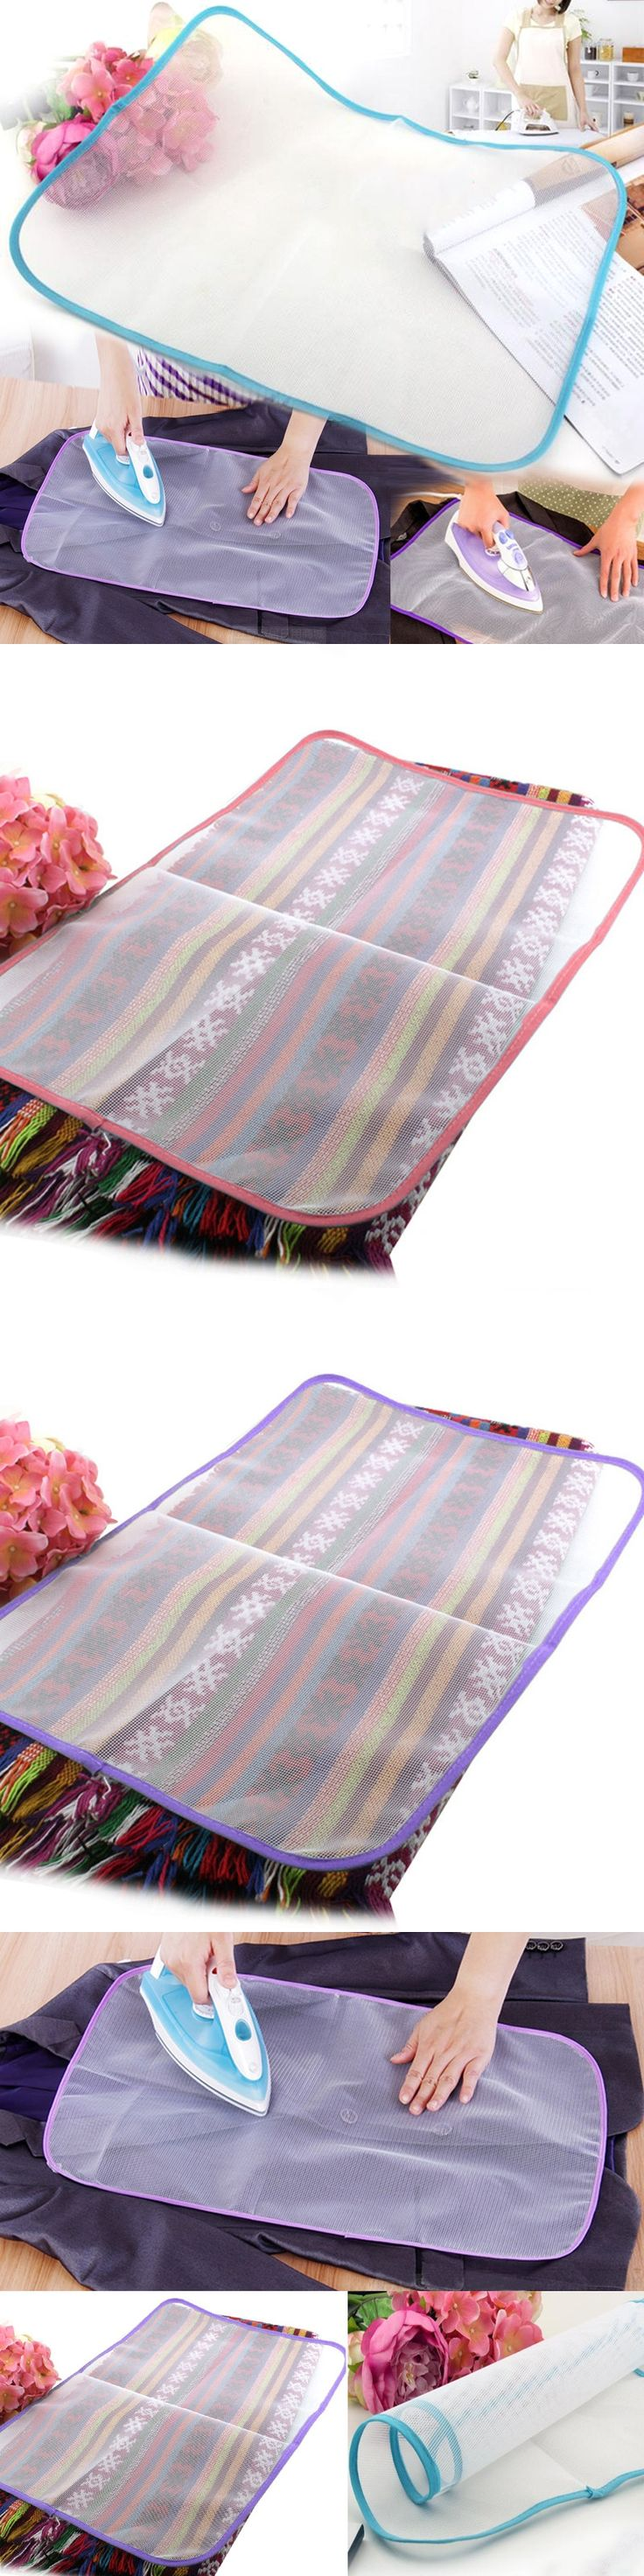 New High Temperature Ironing Cloth Ironing Pad Protective Insulation Against Hot Household Ironing Mattress E2Shopping